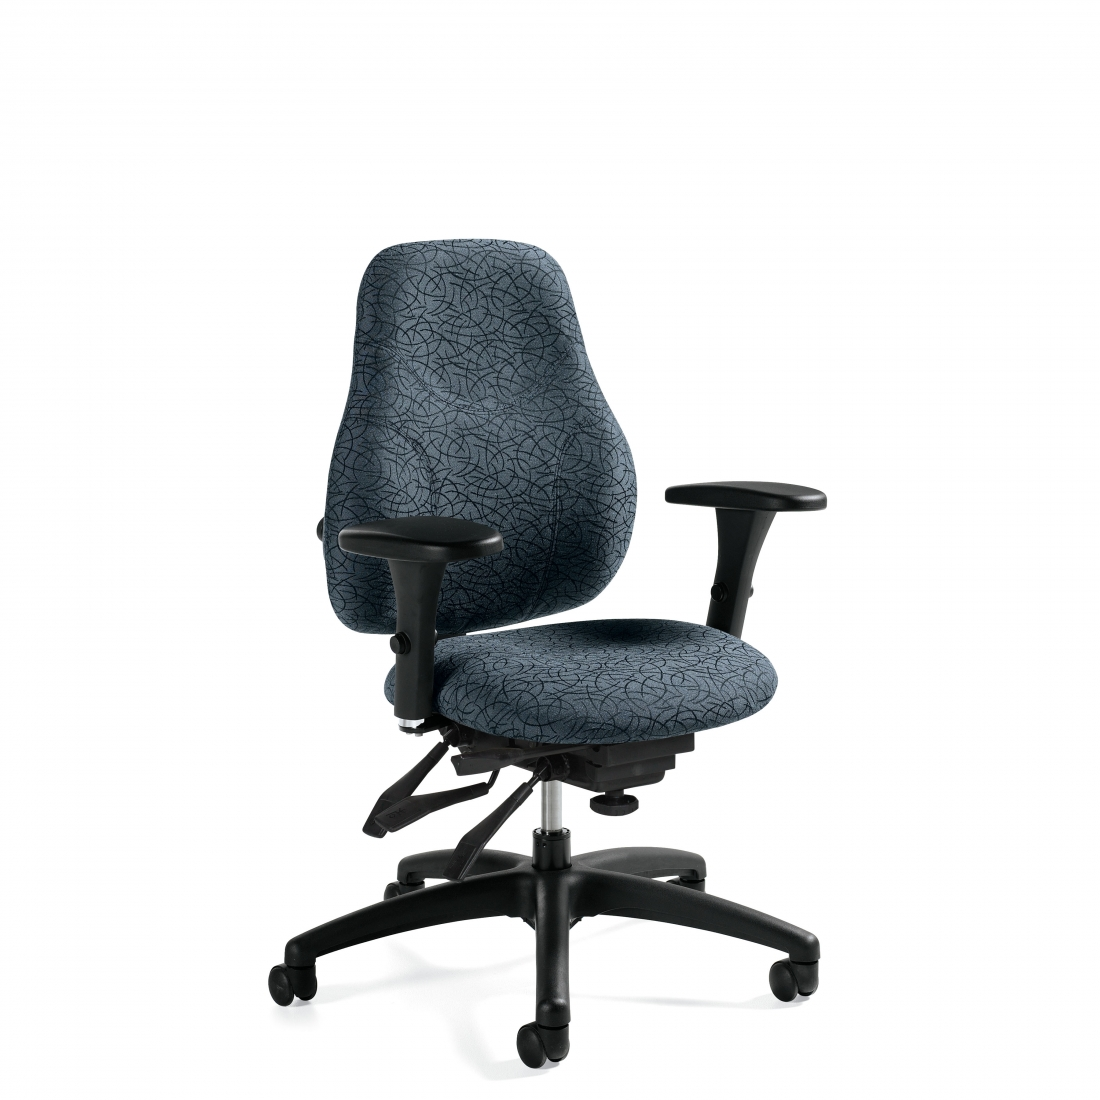 ergonomic chair data covers universal tritek ergo select buy rite business furnishings